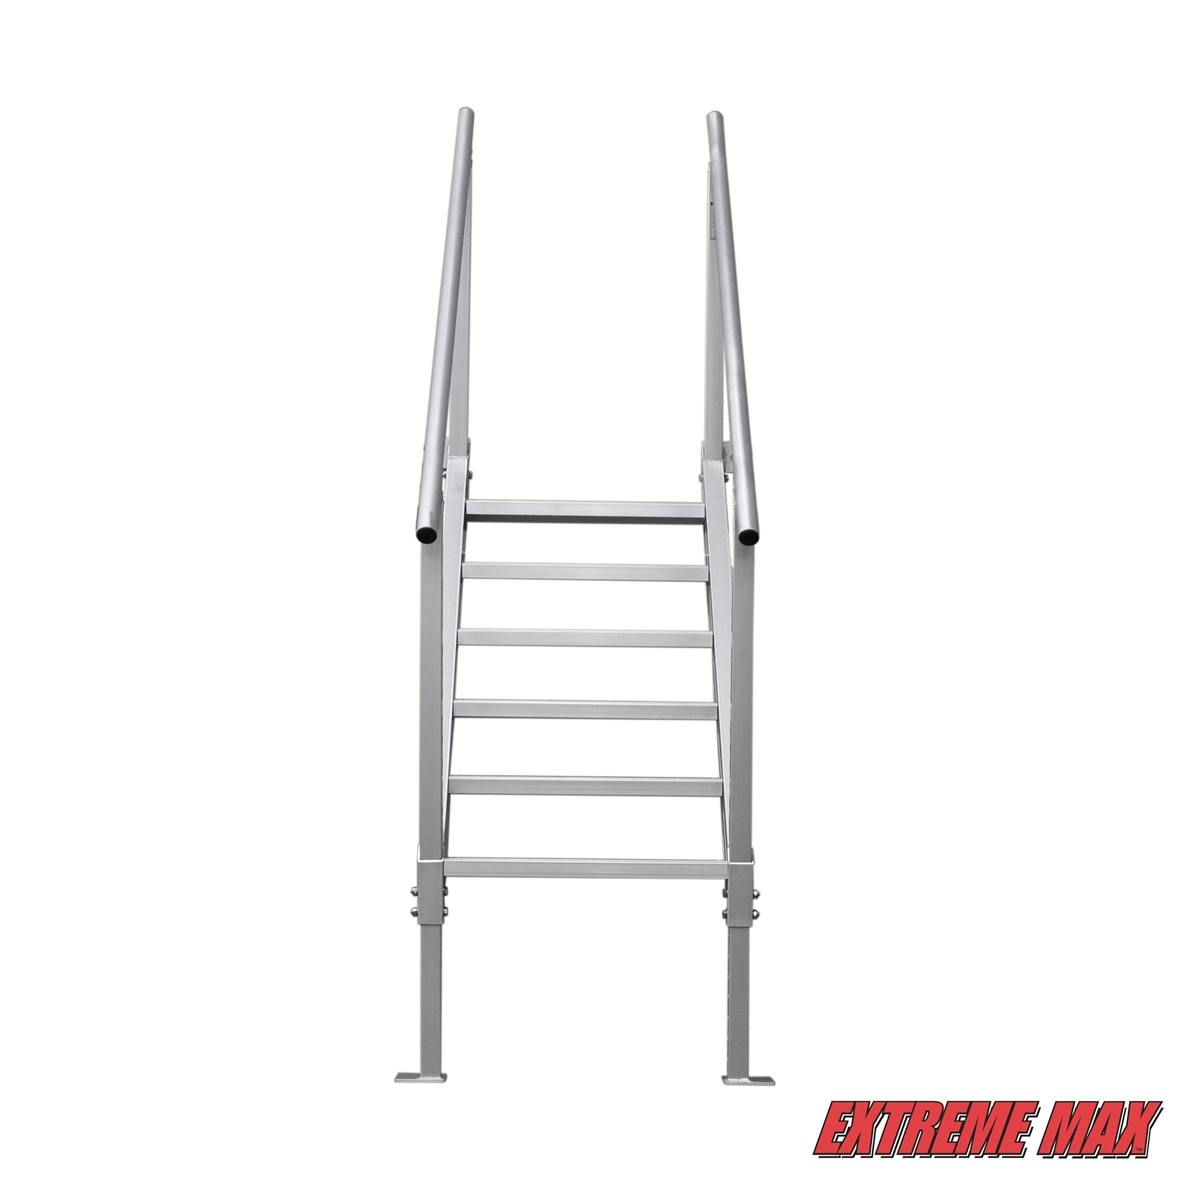 Extreme Max 3005 3846 Universal Mount Aluminum Dock Stairs